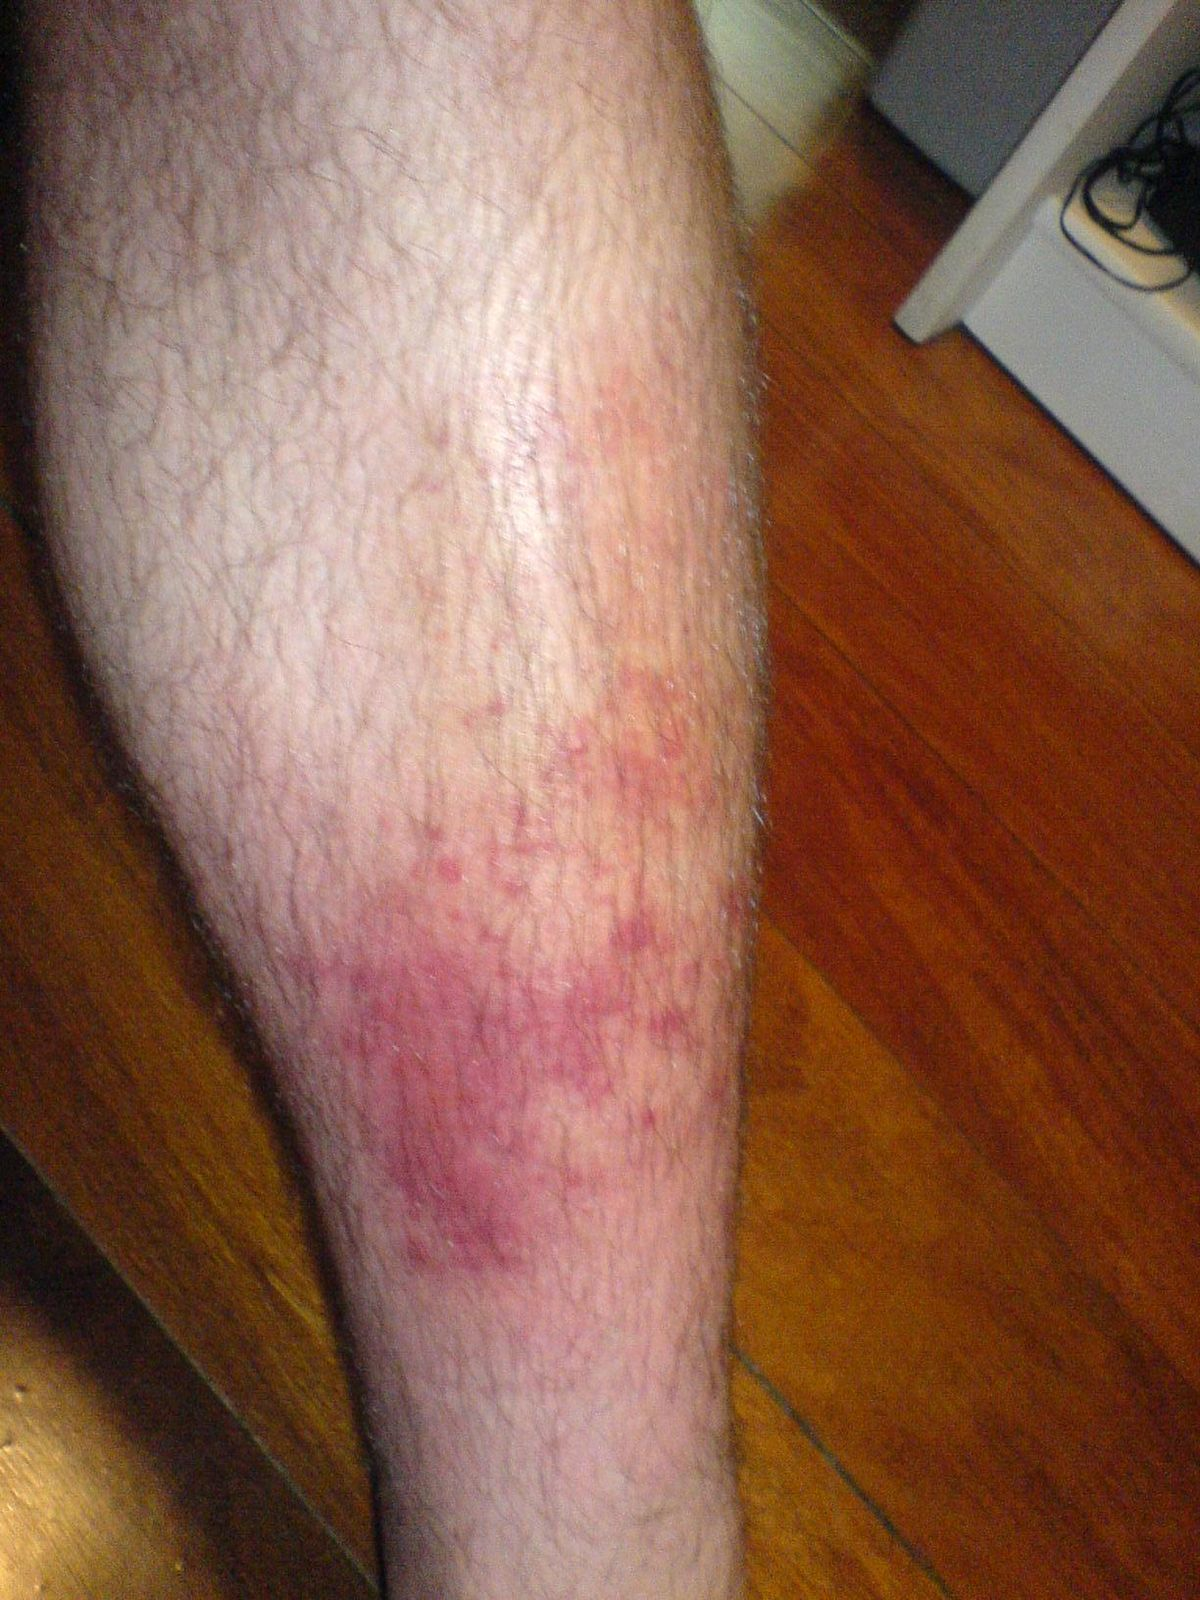 Anal strep itching burning rash on thighs